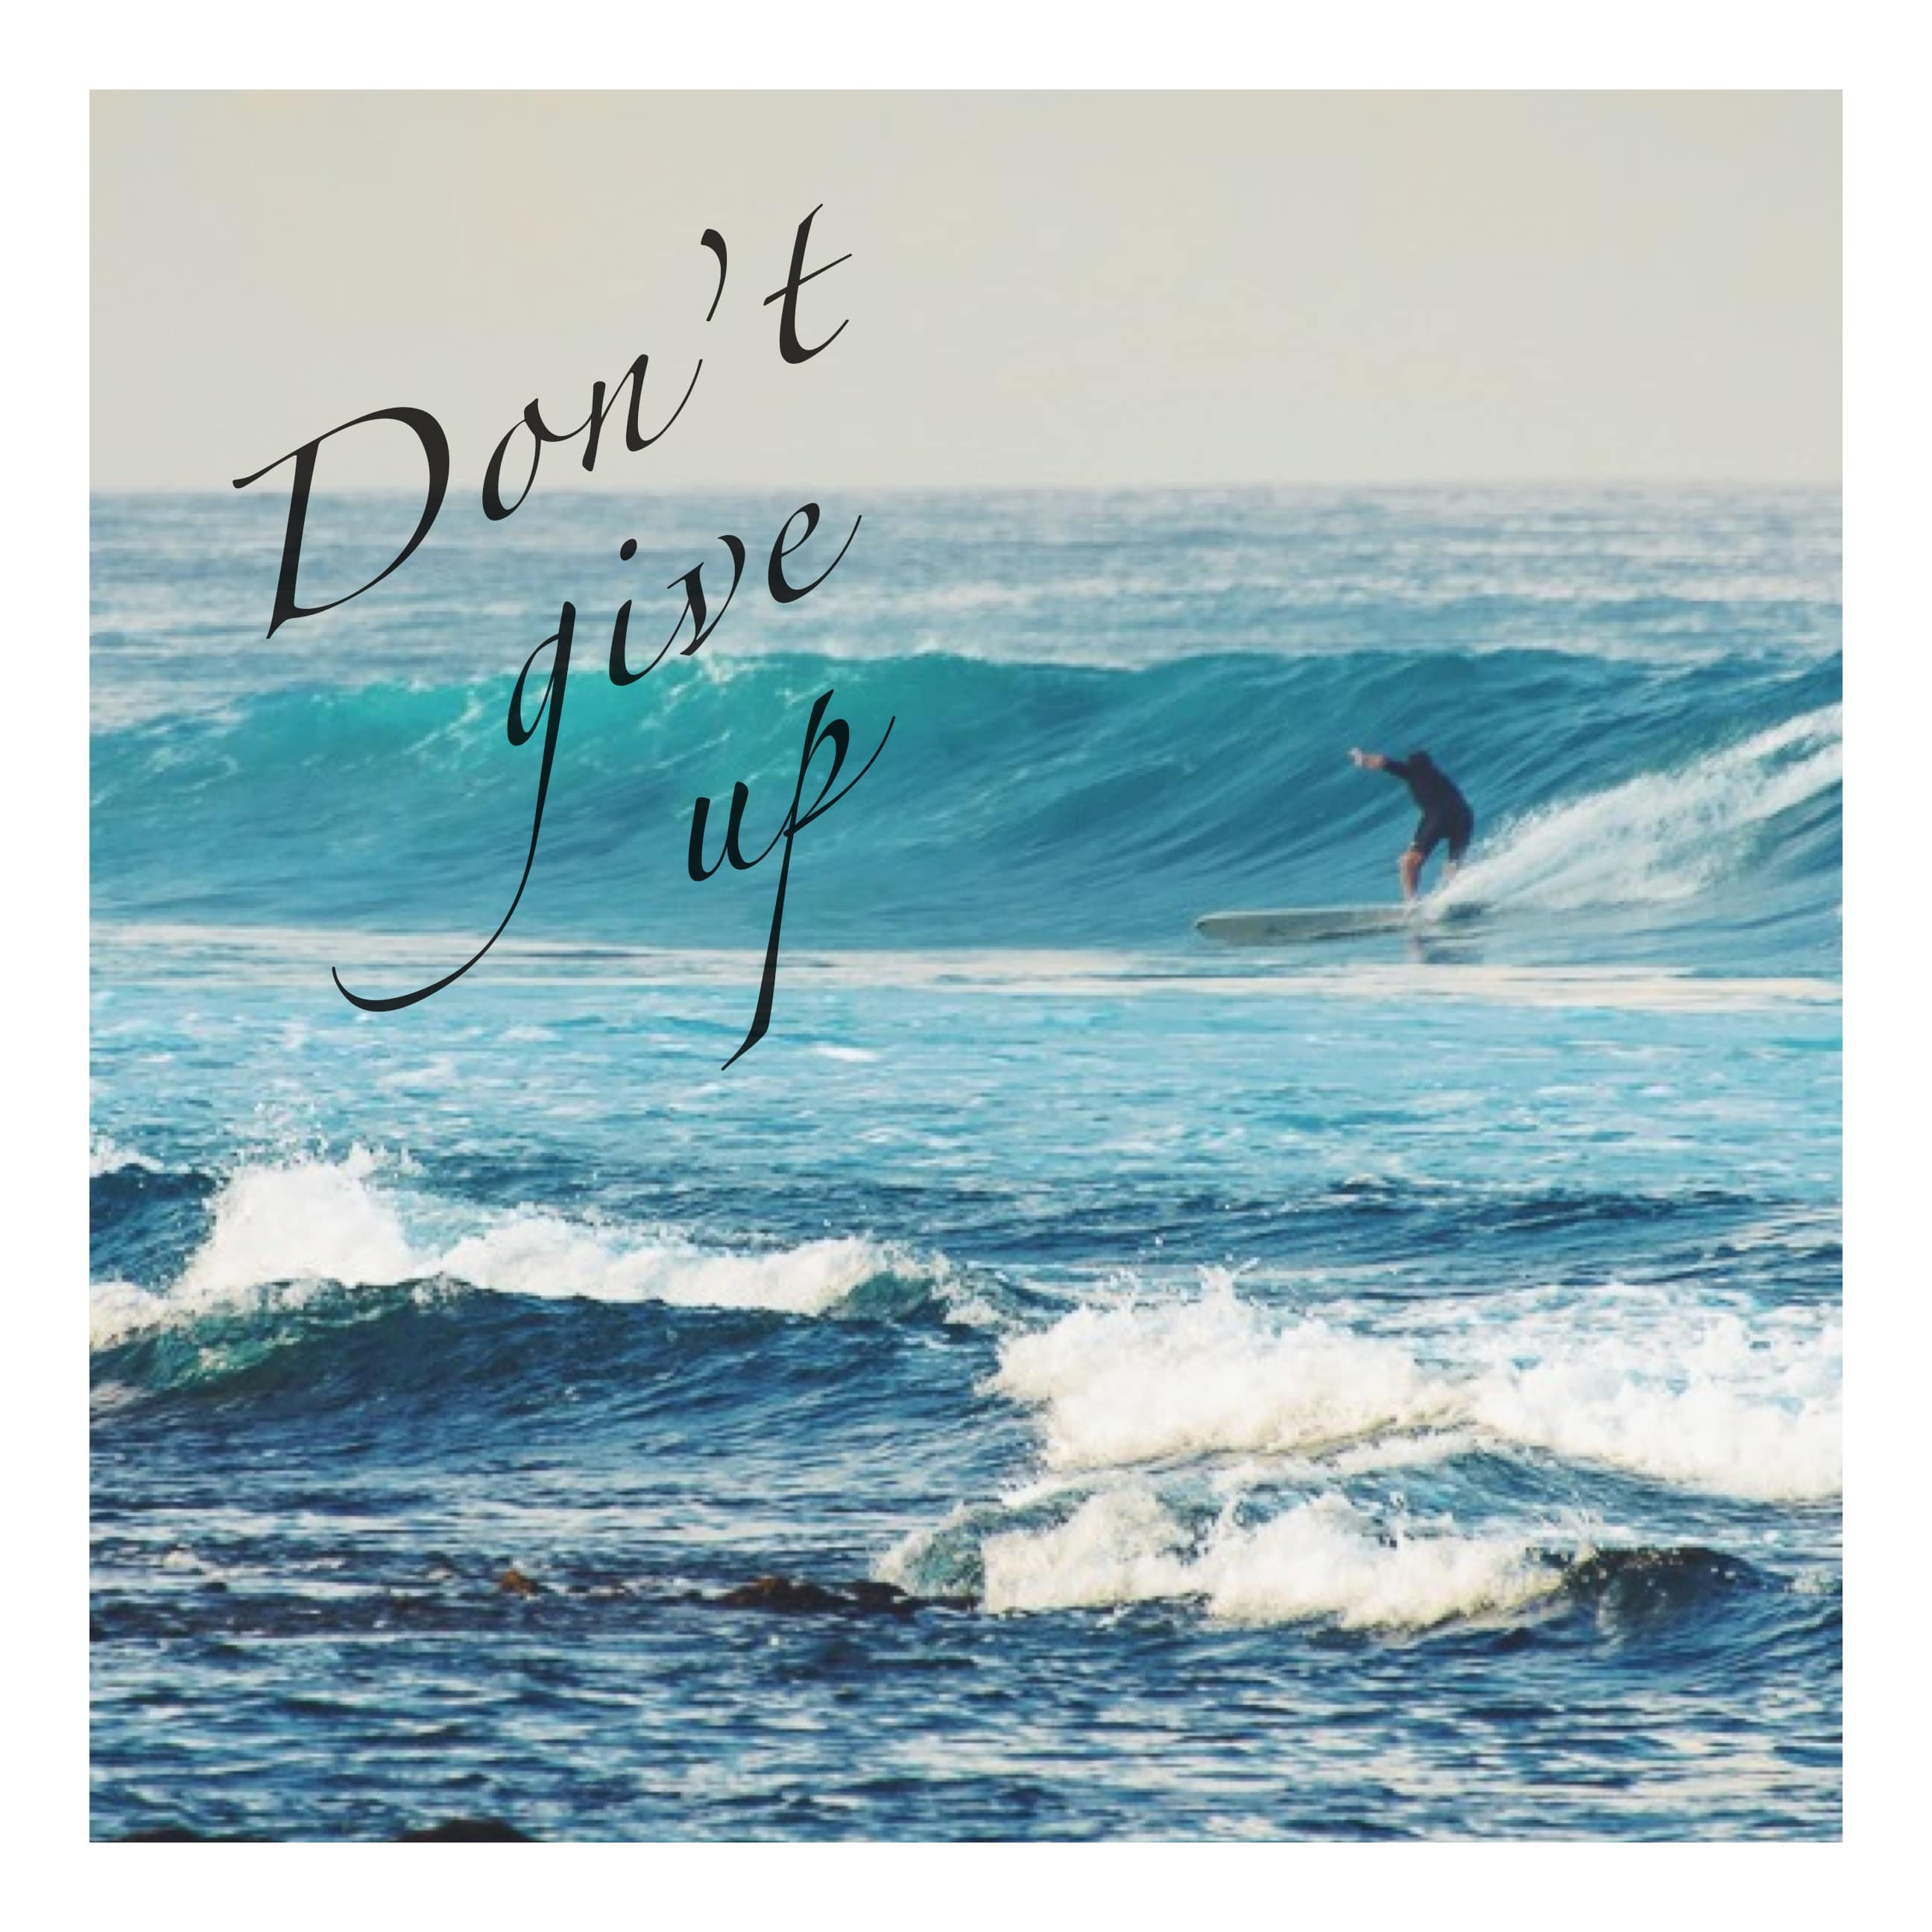 Don't-give-up